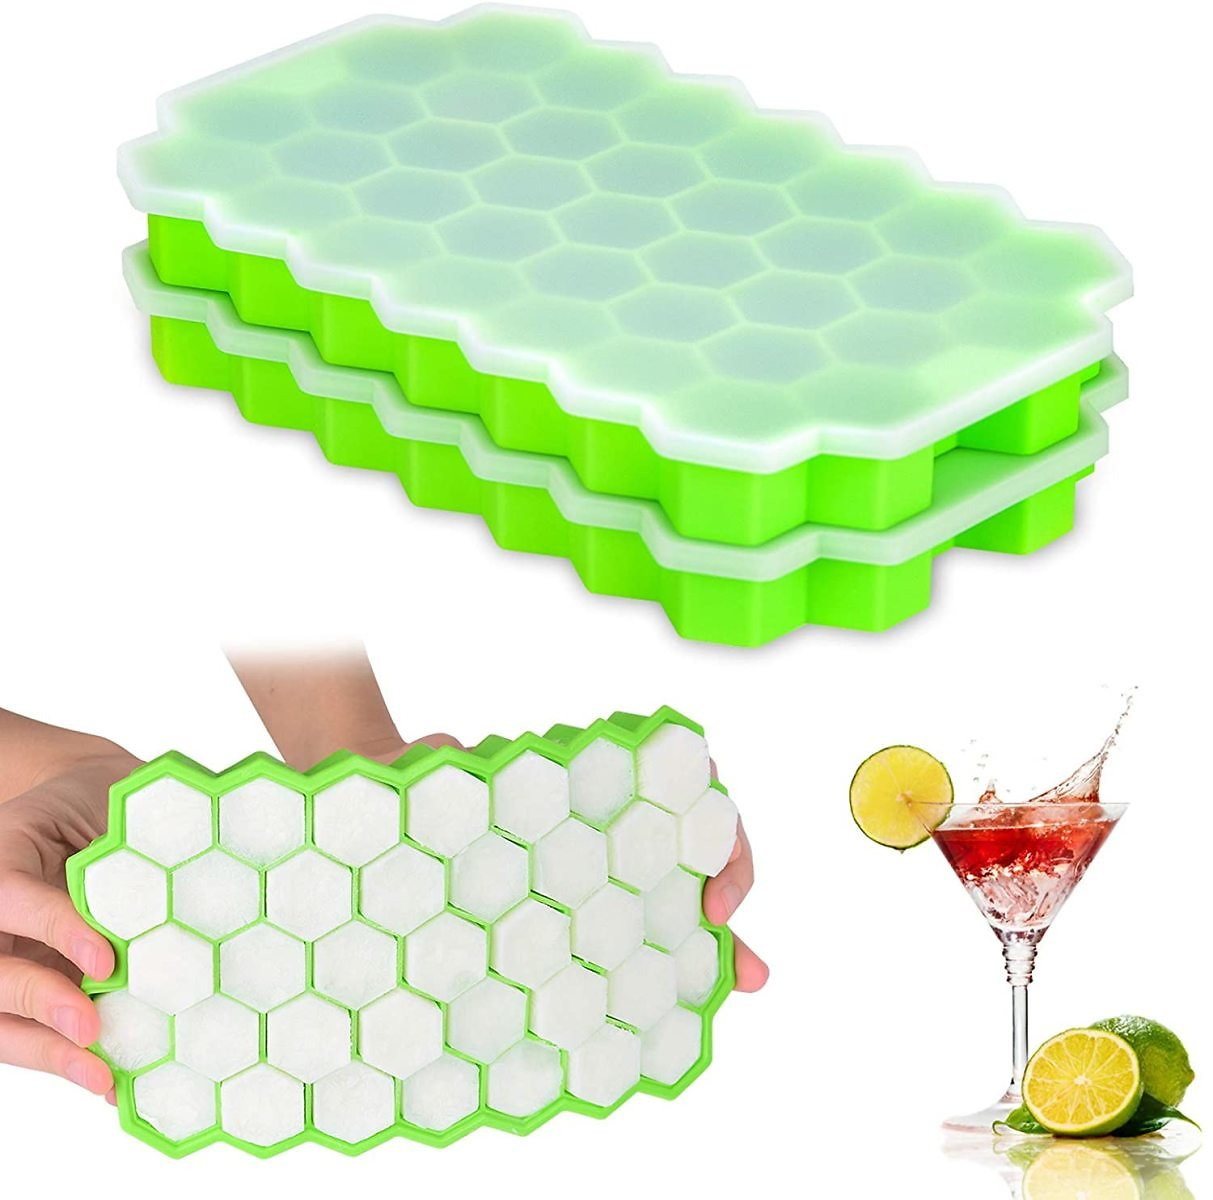 Save 50% On Ice Cube Trays 2 Pack, Morfone Silicone Ice Tray with Removable Lid Easy-Rele with Promo Code 50EGWGEE On Amazon.com